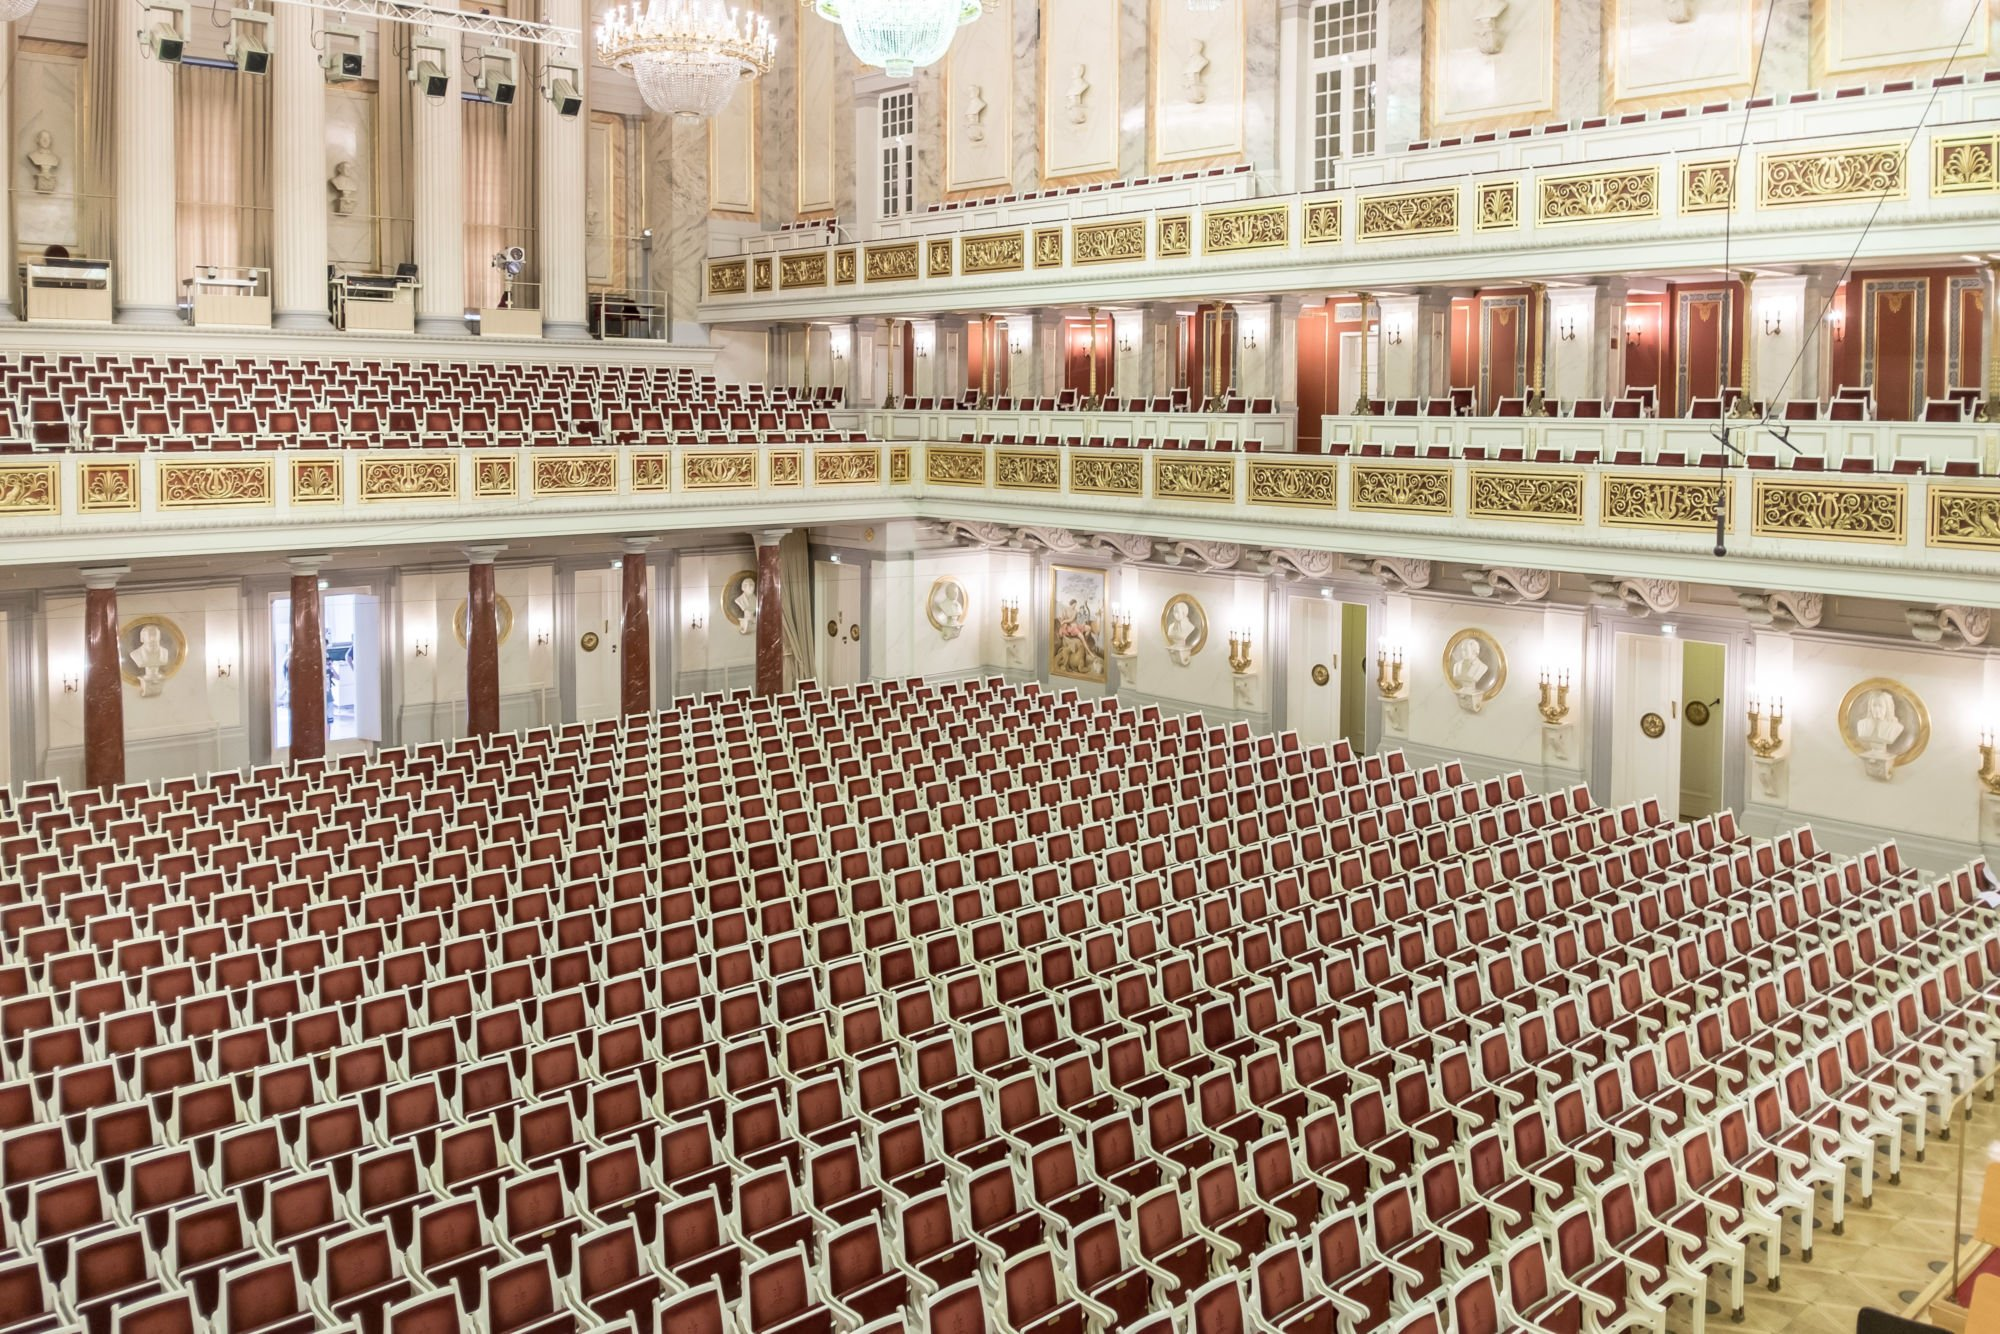 Empty concert hall – free photo on Barnimages